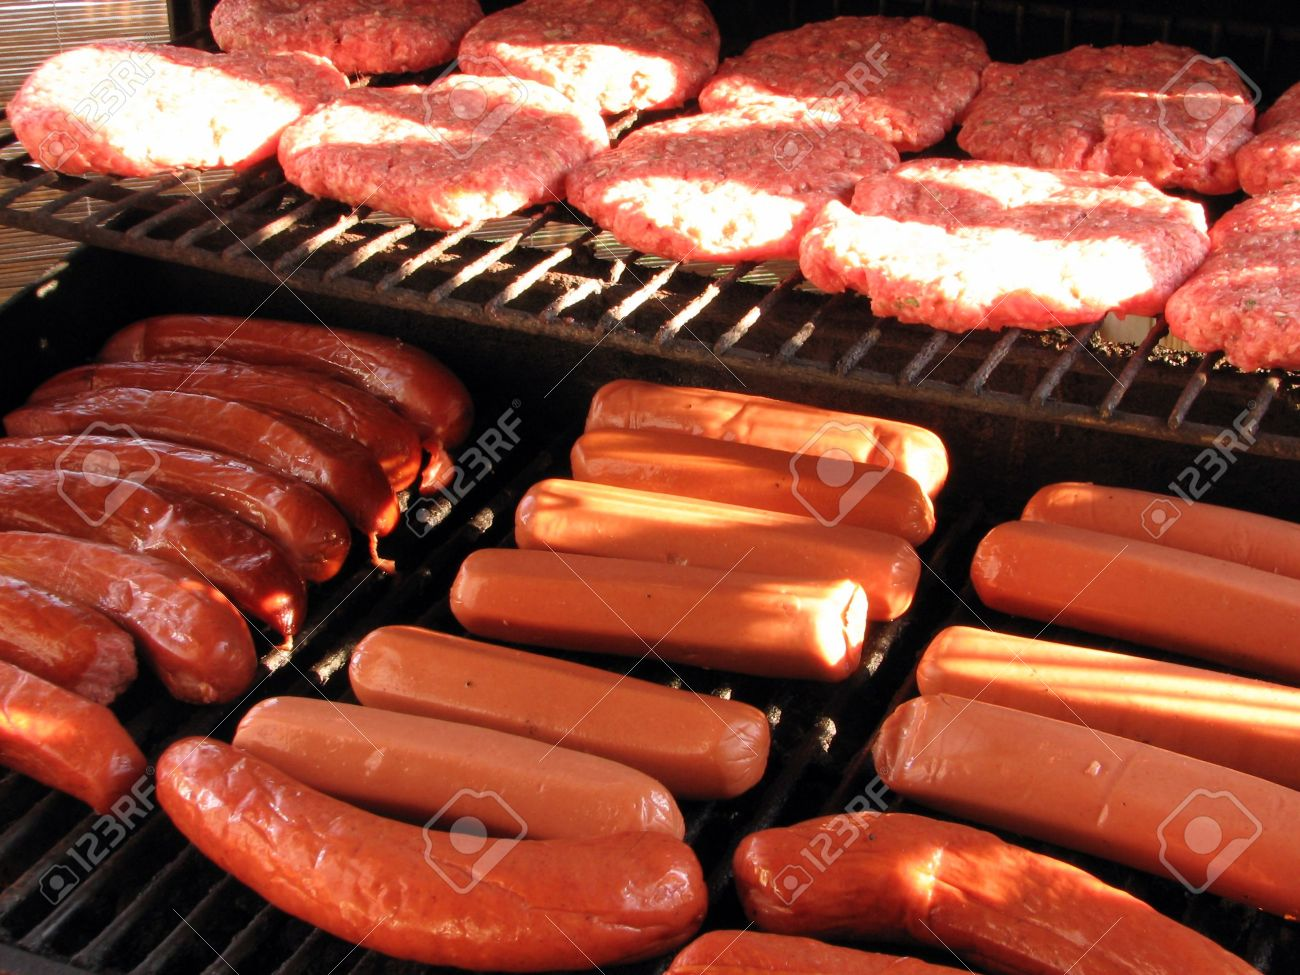 Communication on this topic: Grilled Burgers and Hot Dogs, grilled-burgers-and-hot-dogs/